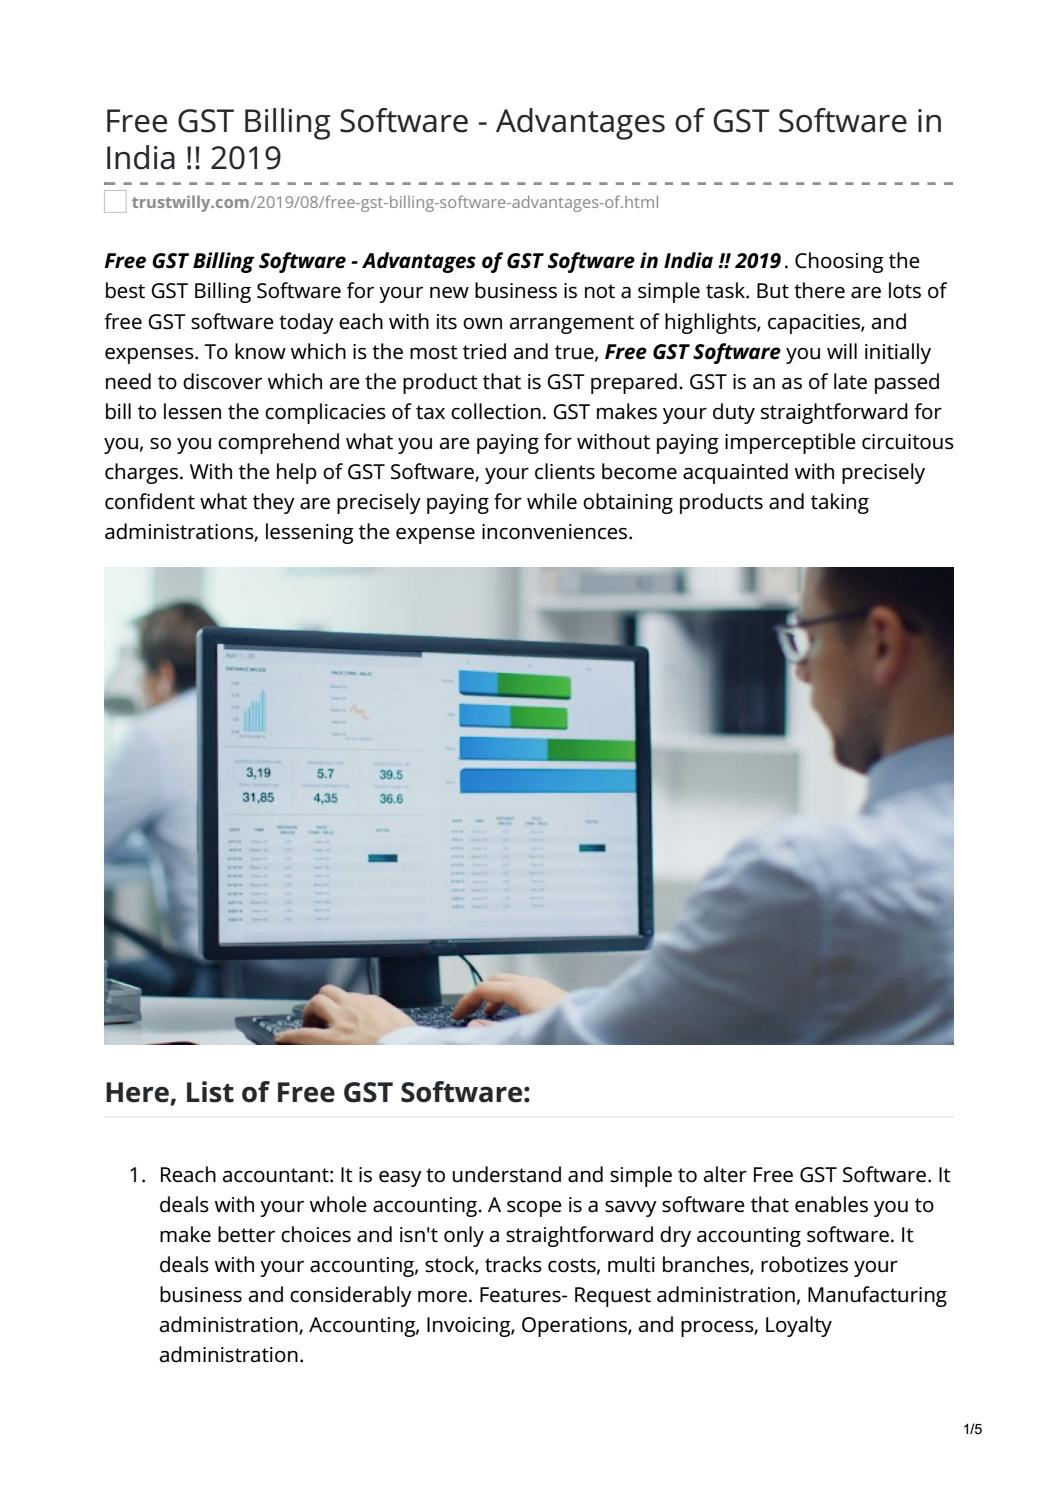 Free Gst Billing Software Advantages Of Gst Software In India 2019 By Curiosity Unleashed Issuu